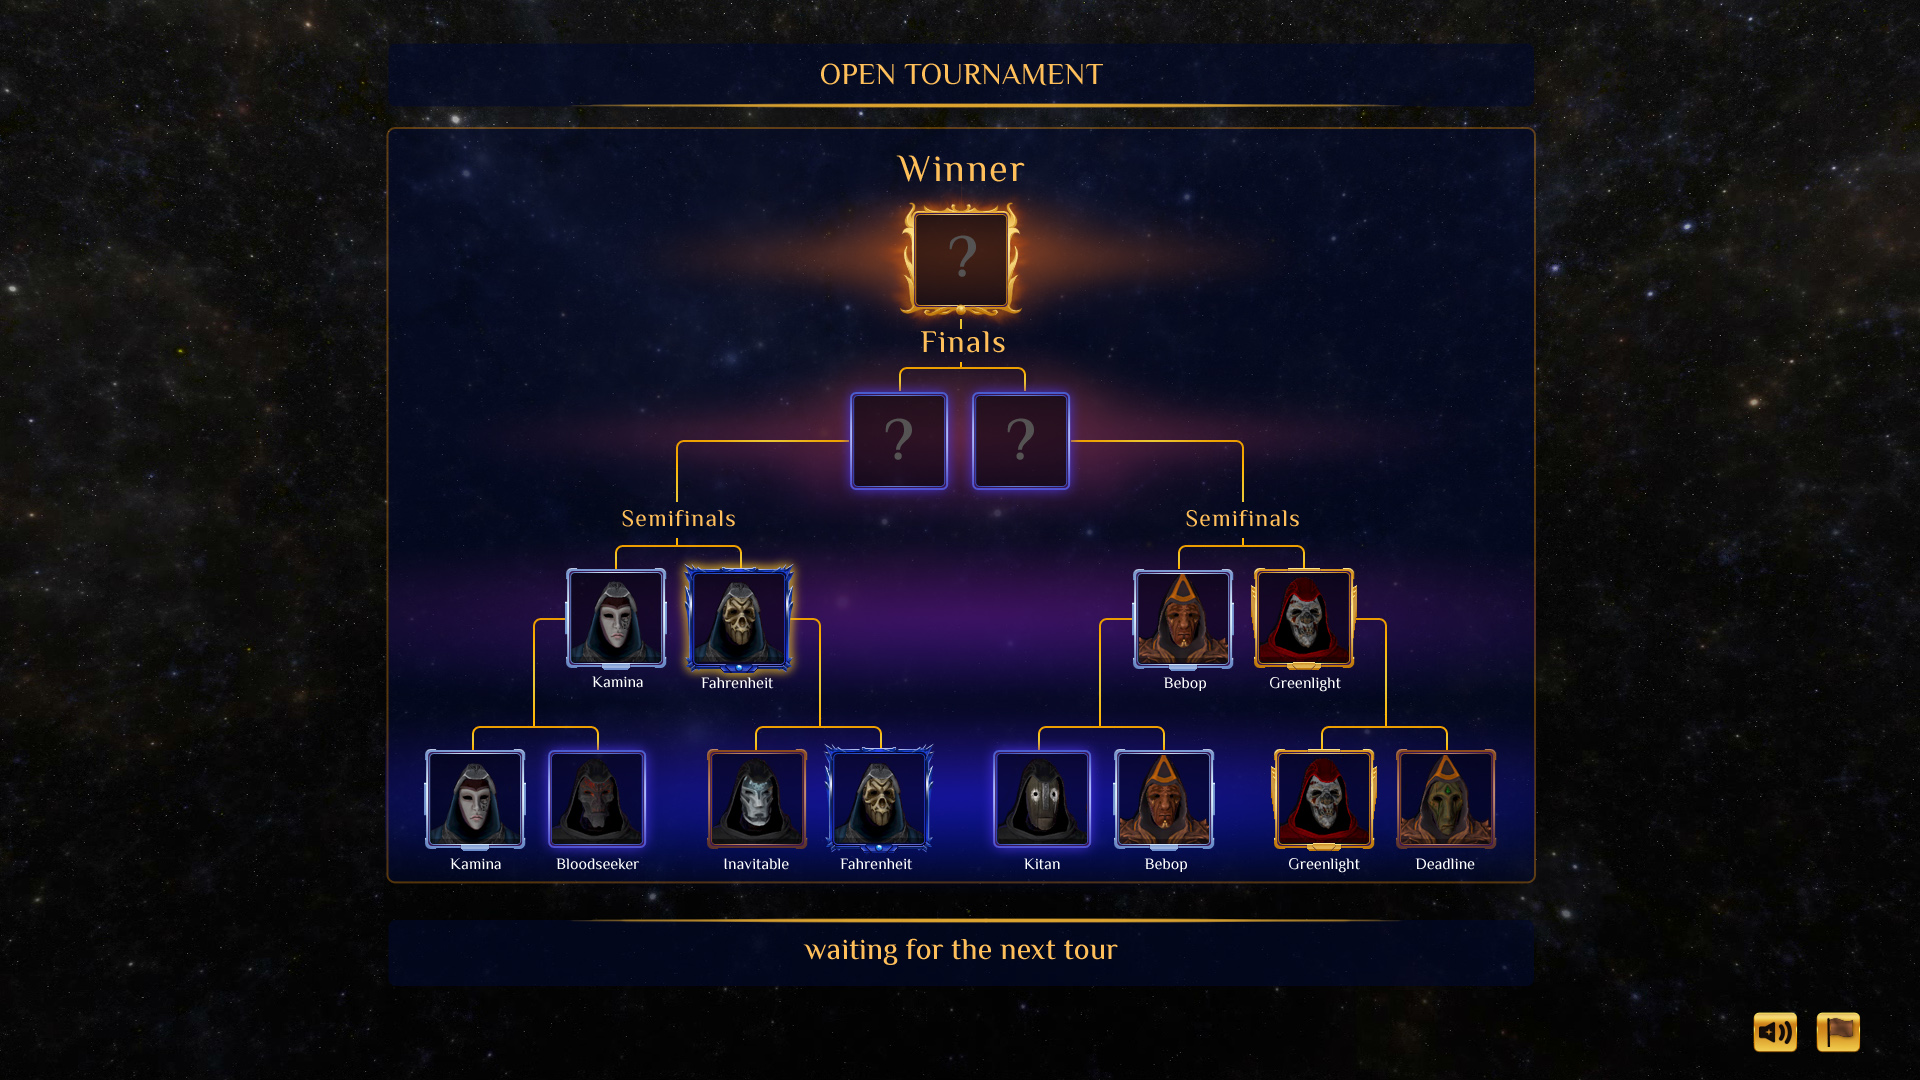 Tournament Screen